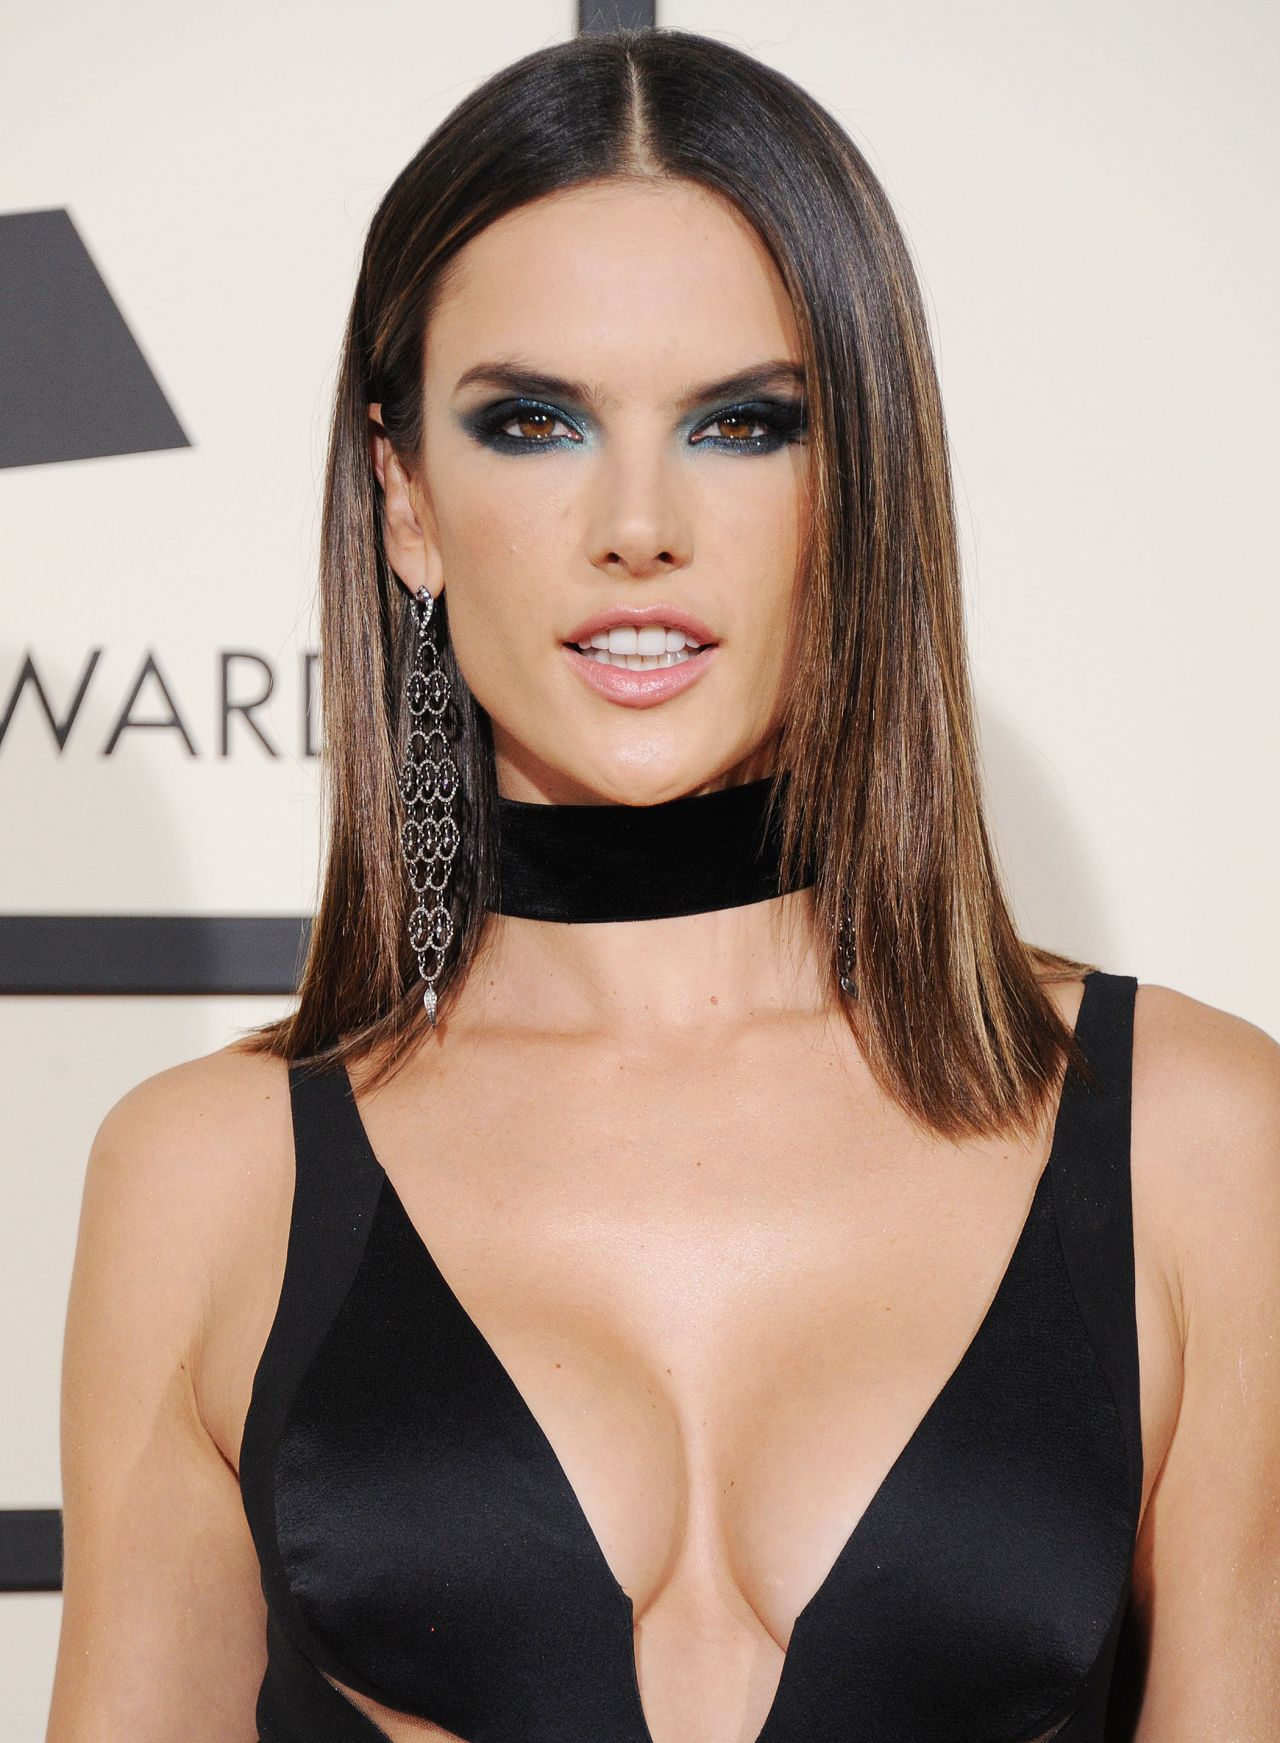 http://celebmafia.com/wp-content/uploads/2016/02/alessandra-ambrosio-2016-grammy-awards-in-los-angeles-ca-3.jpg